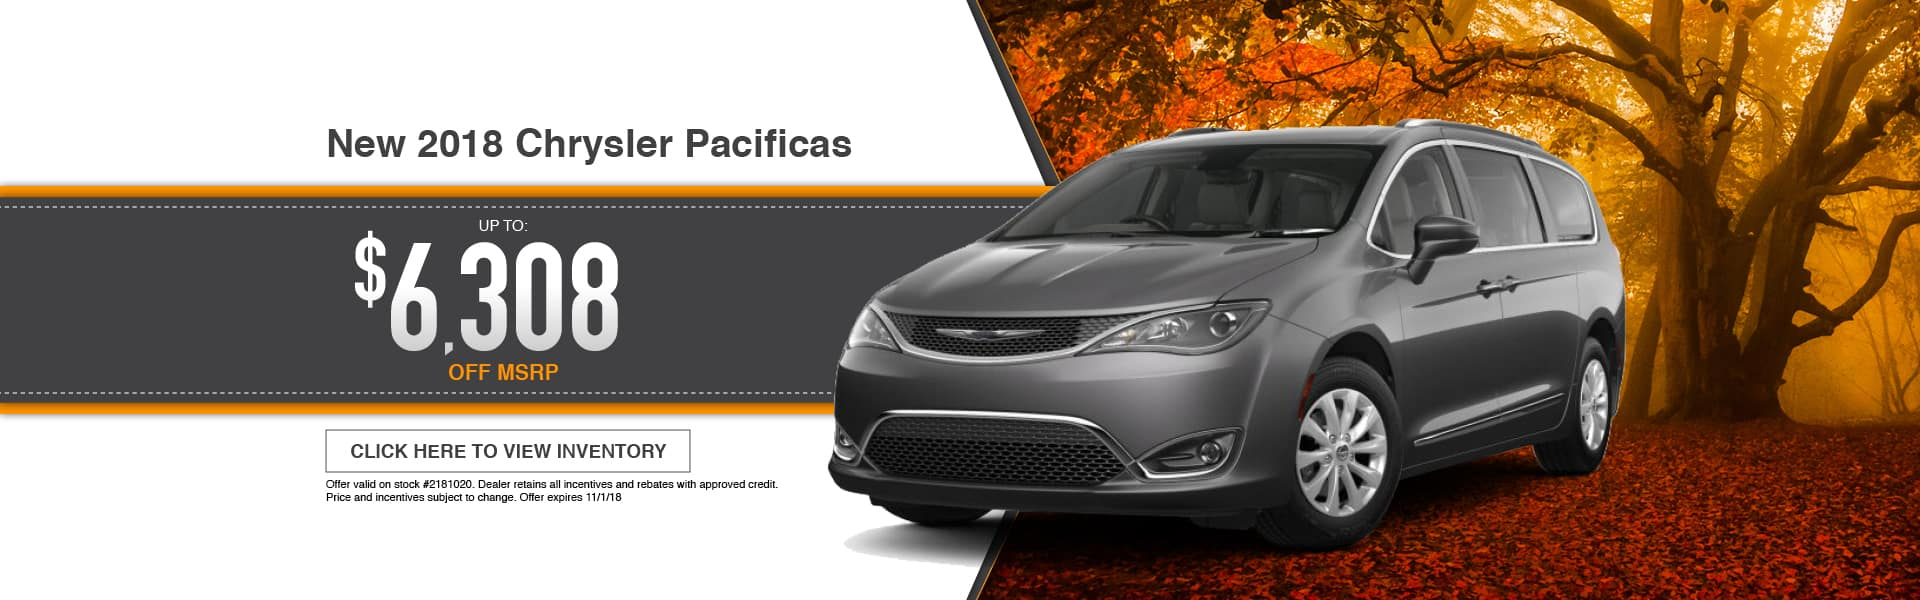 New 2018 Chrysler Pacifica Special at Thomson Chrysler in Thomson, GA